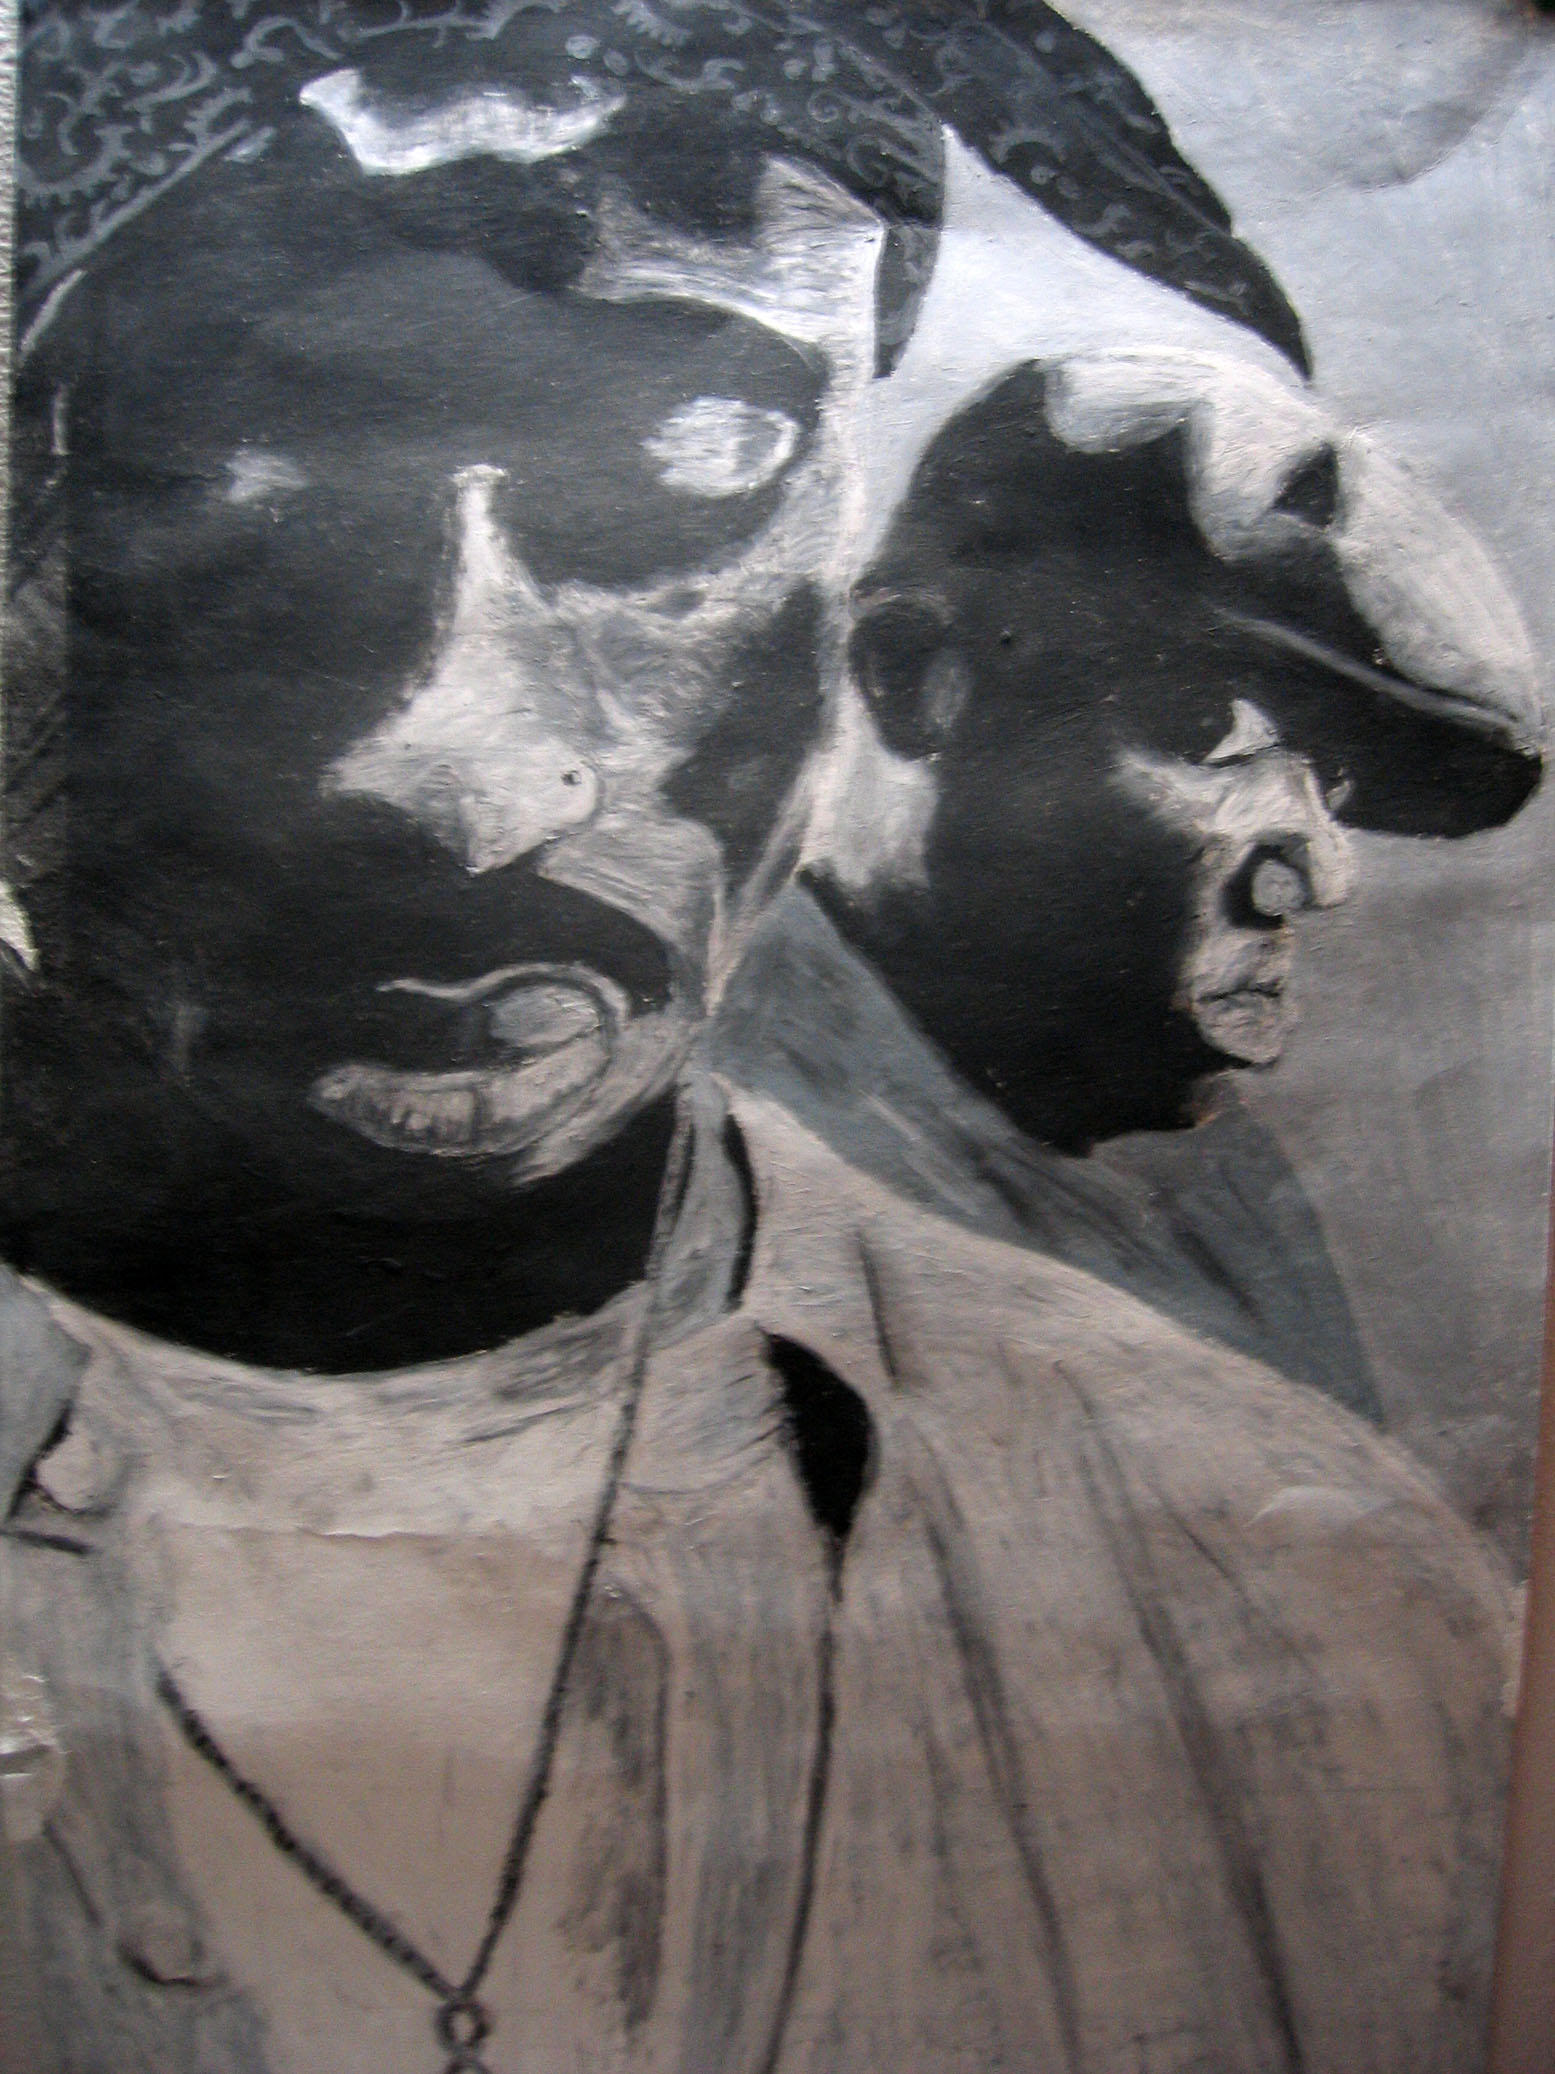 Tupac and Biggie by rEk-1 on DeviantArt